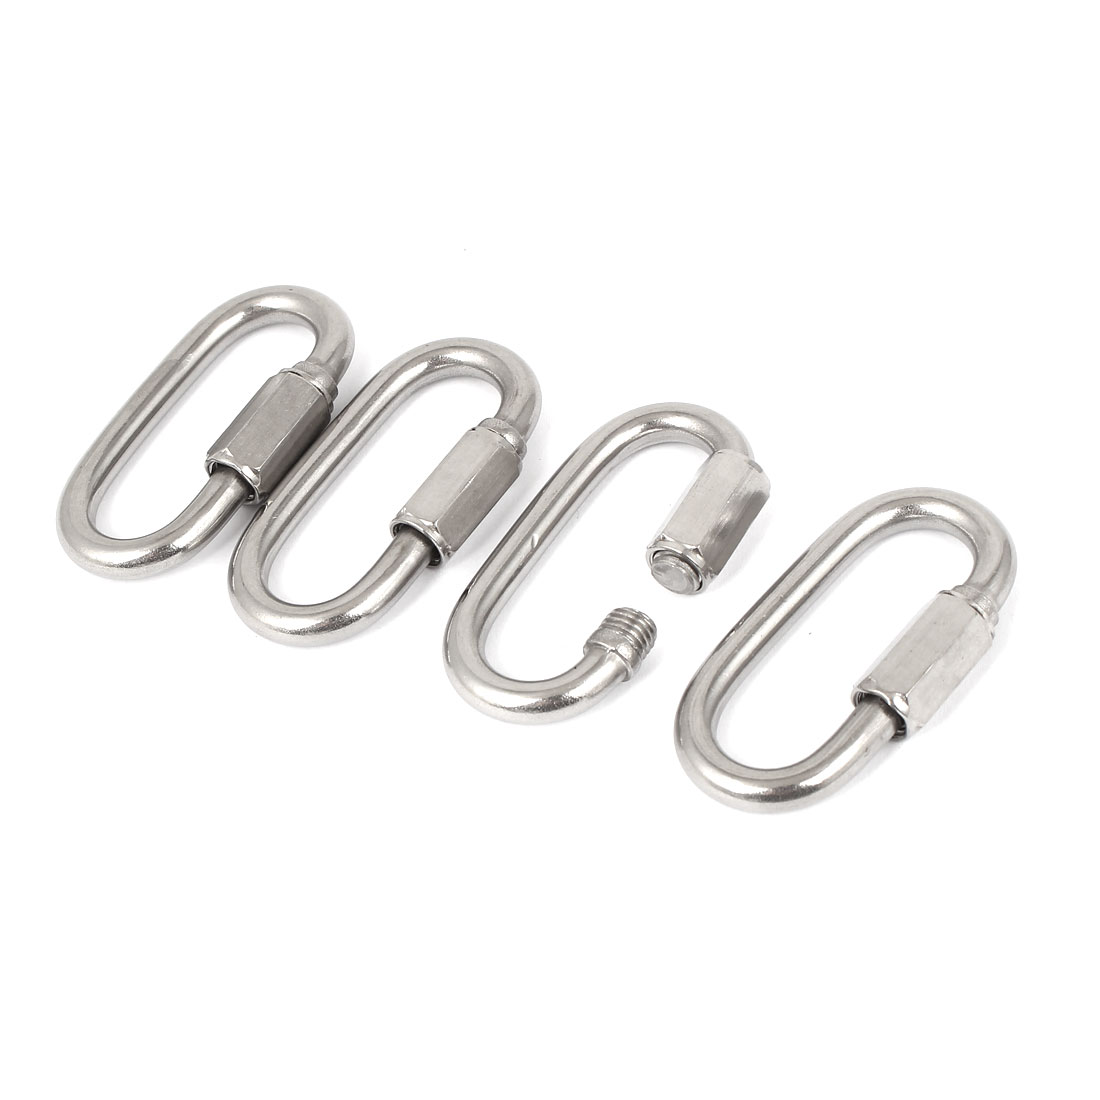 6mm Thickness 304 Stainless Steel Quick Oval Link Lock Carabiner 4 Pcs